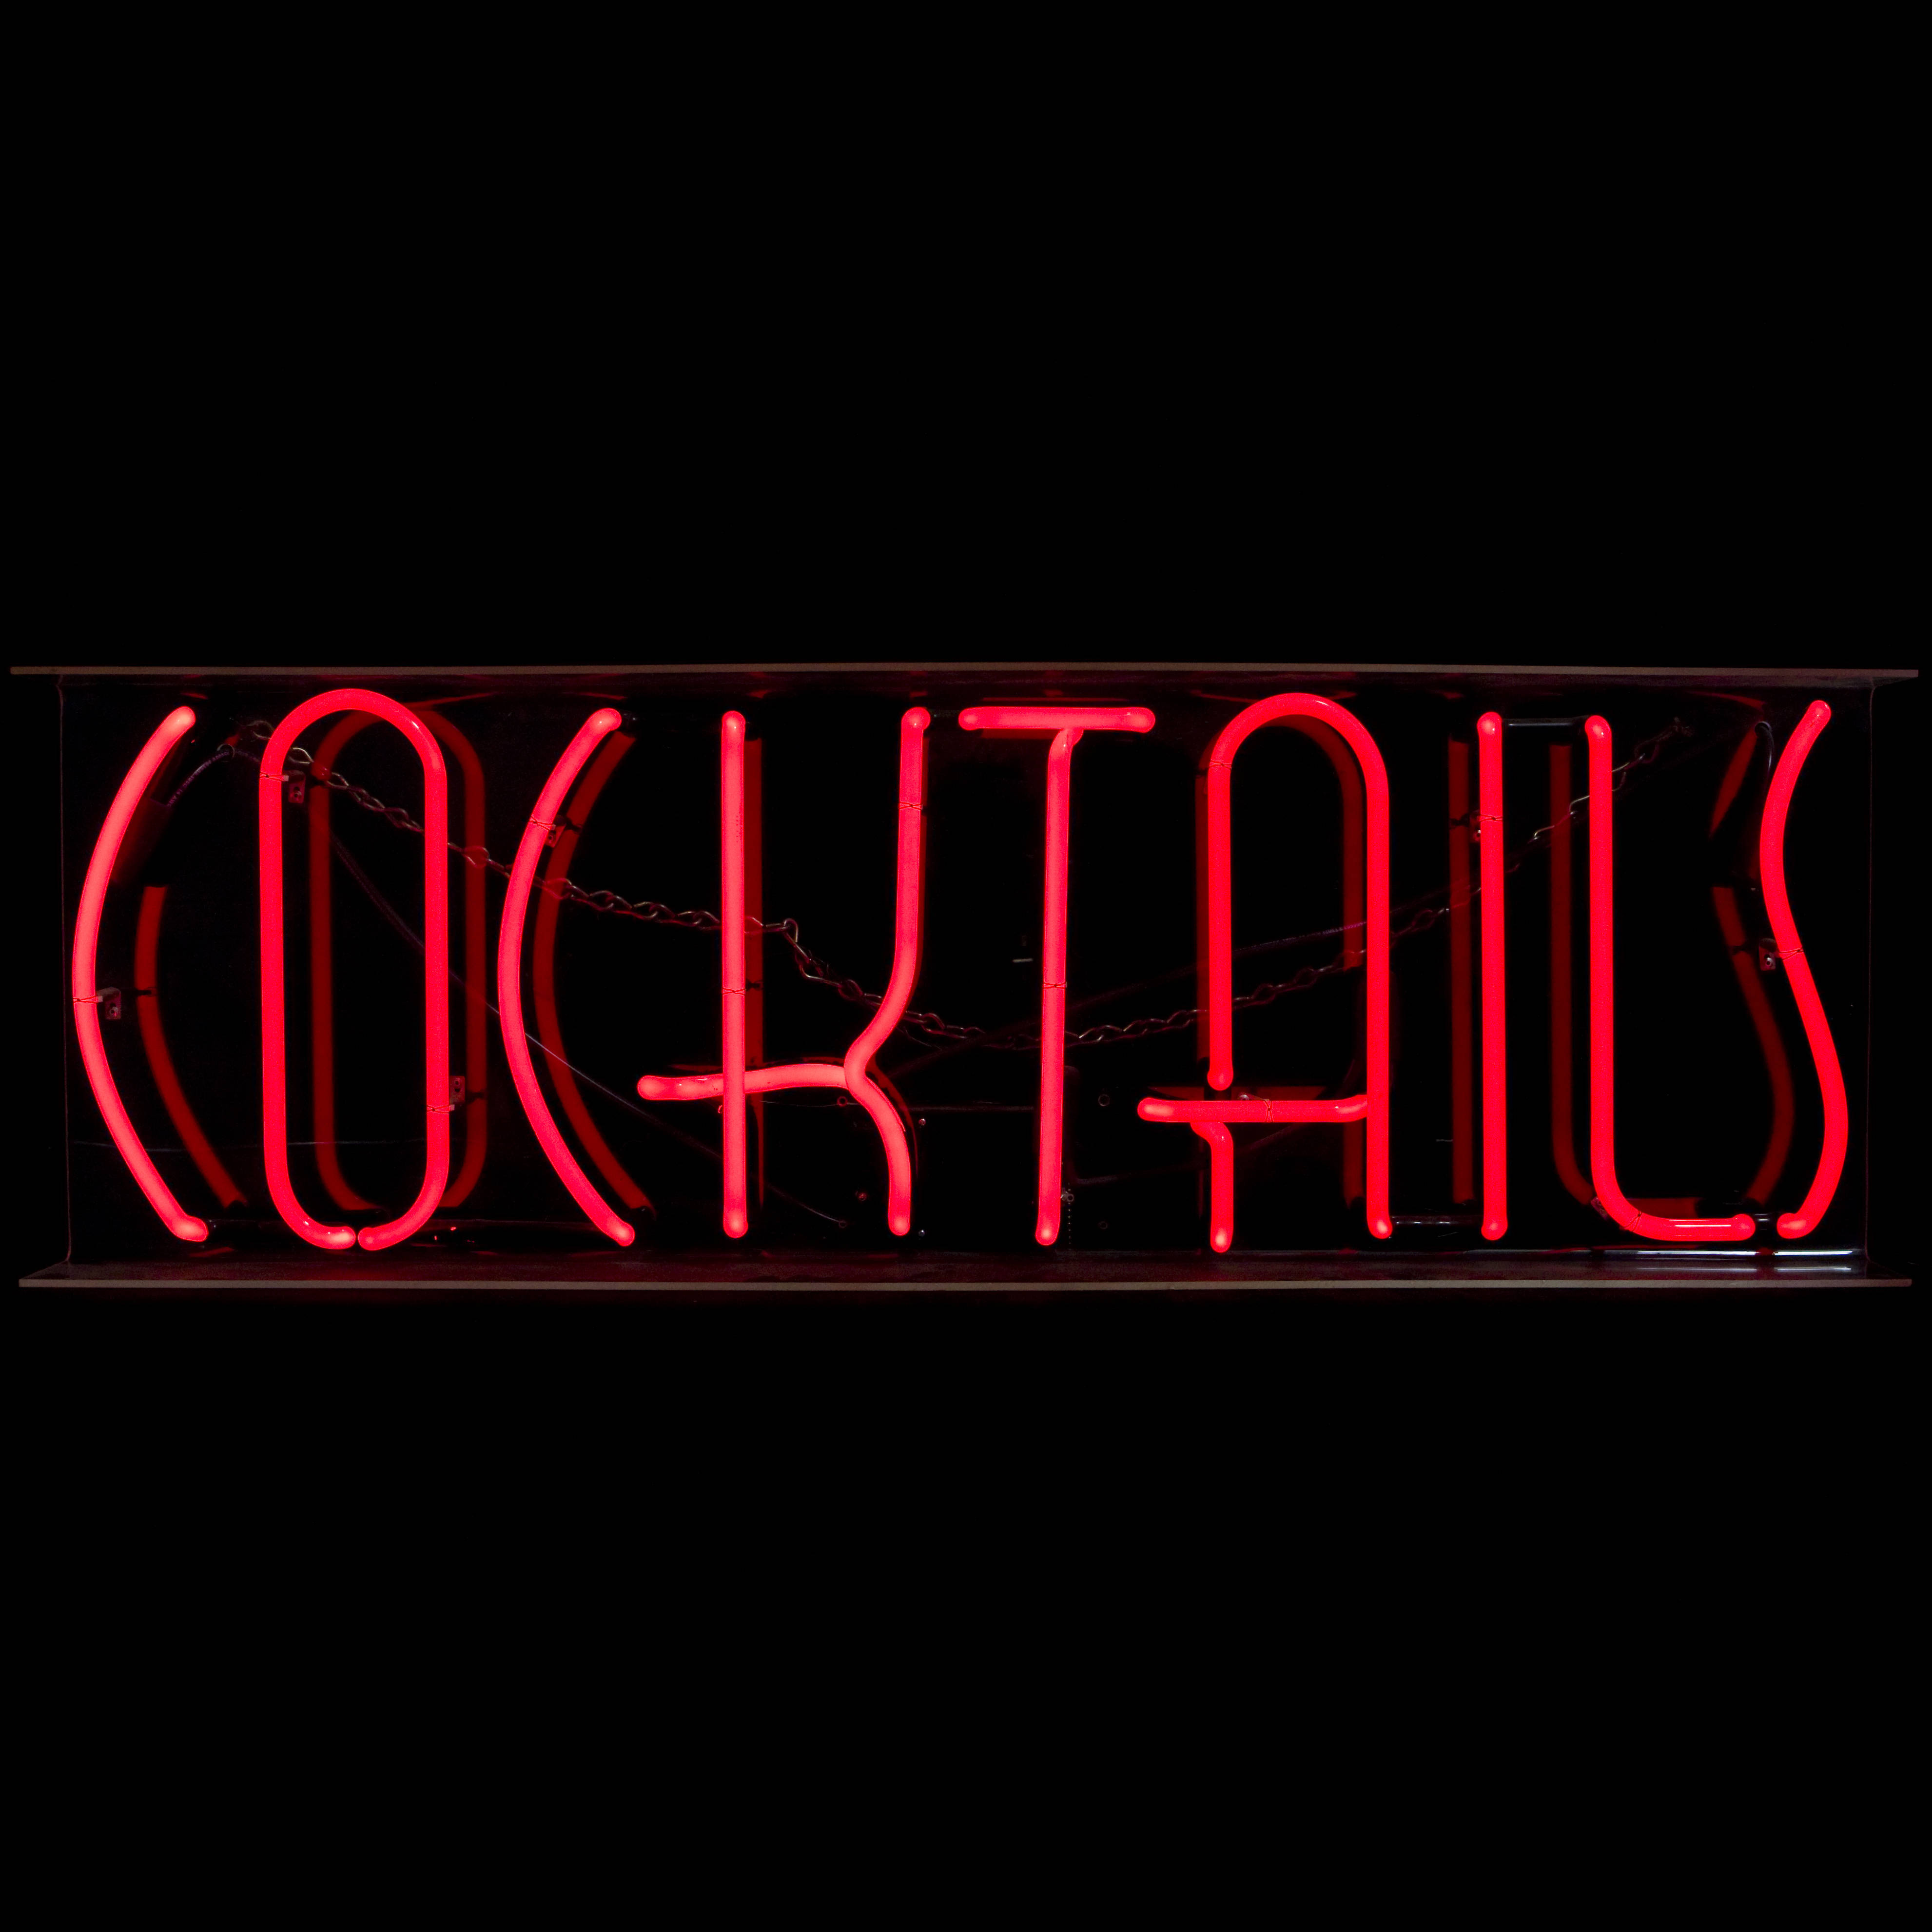 COCKTAILS / NEON SIGN | Air Designs